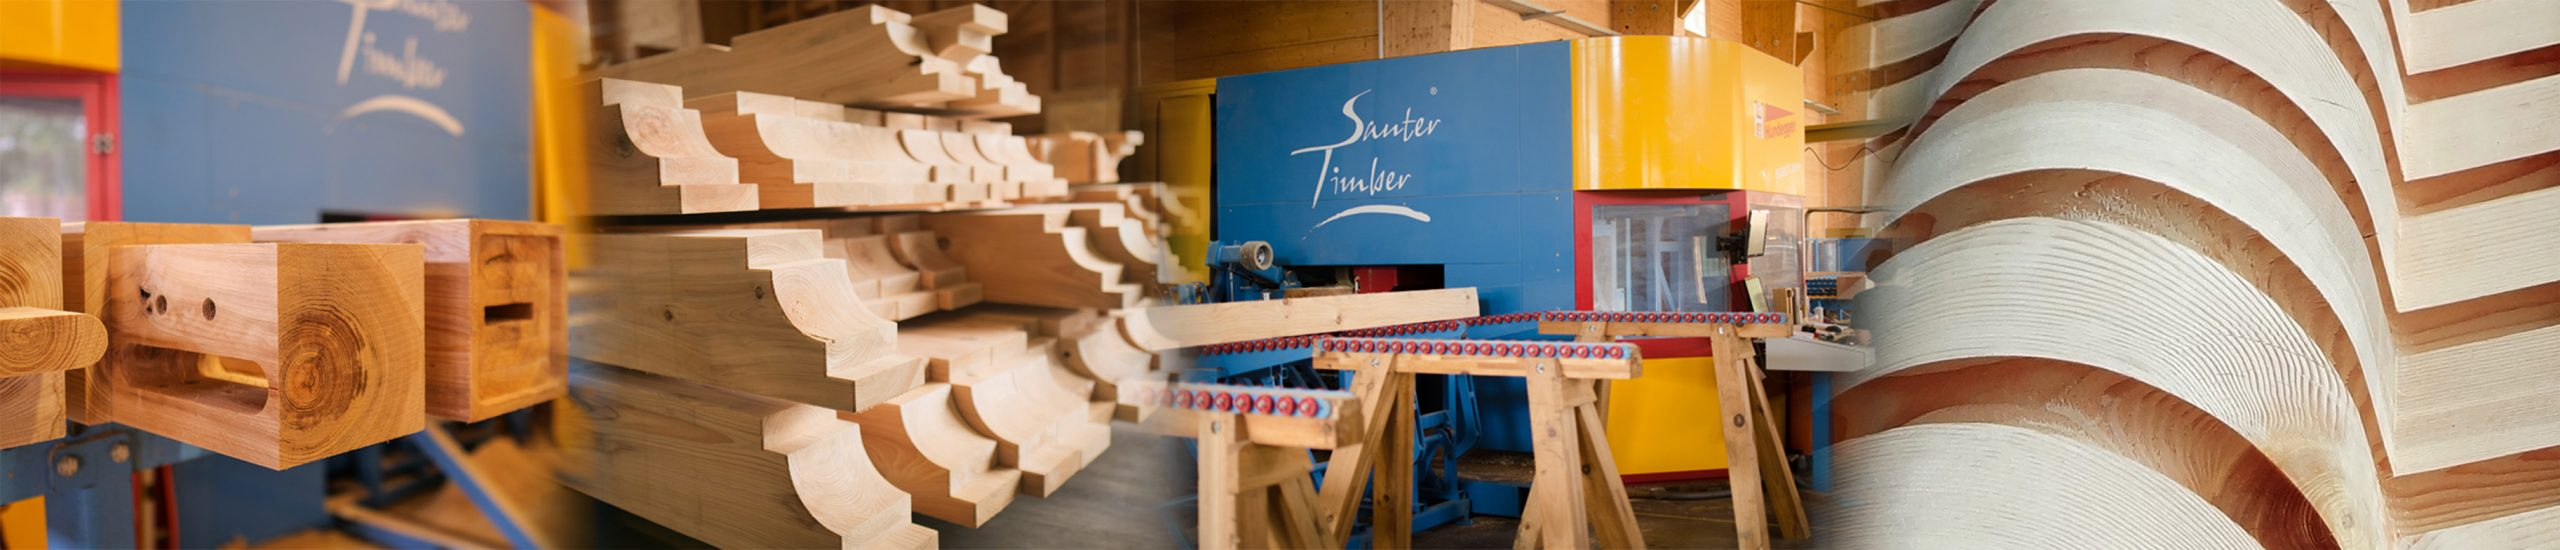 Timber Frame Wood Compontents | Precision Precut | Sauter Timber